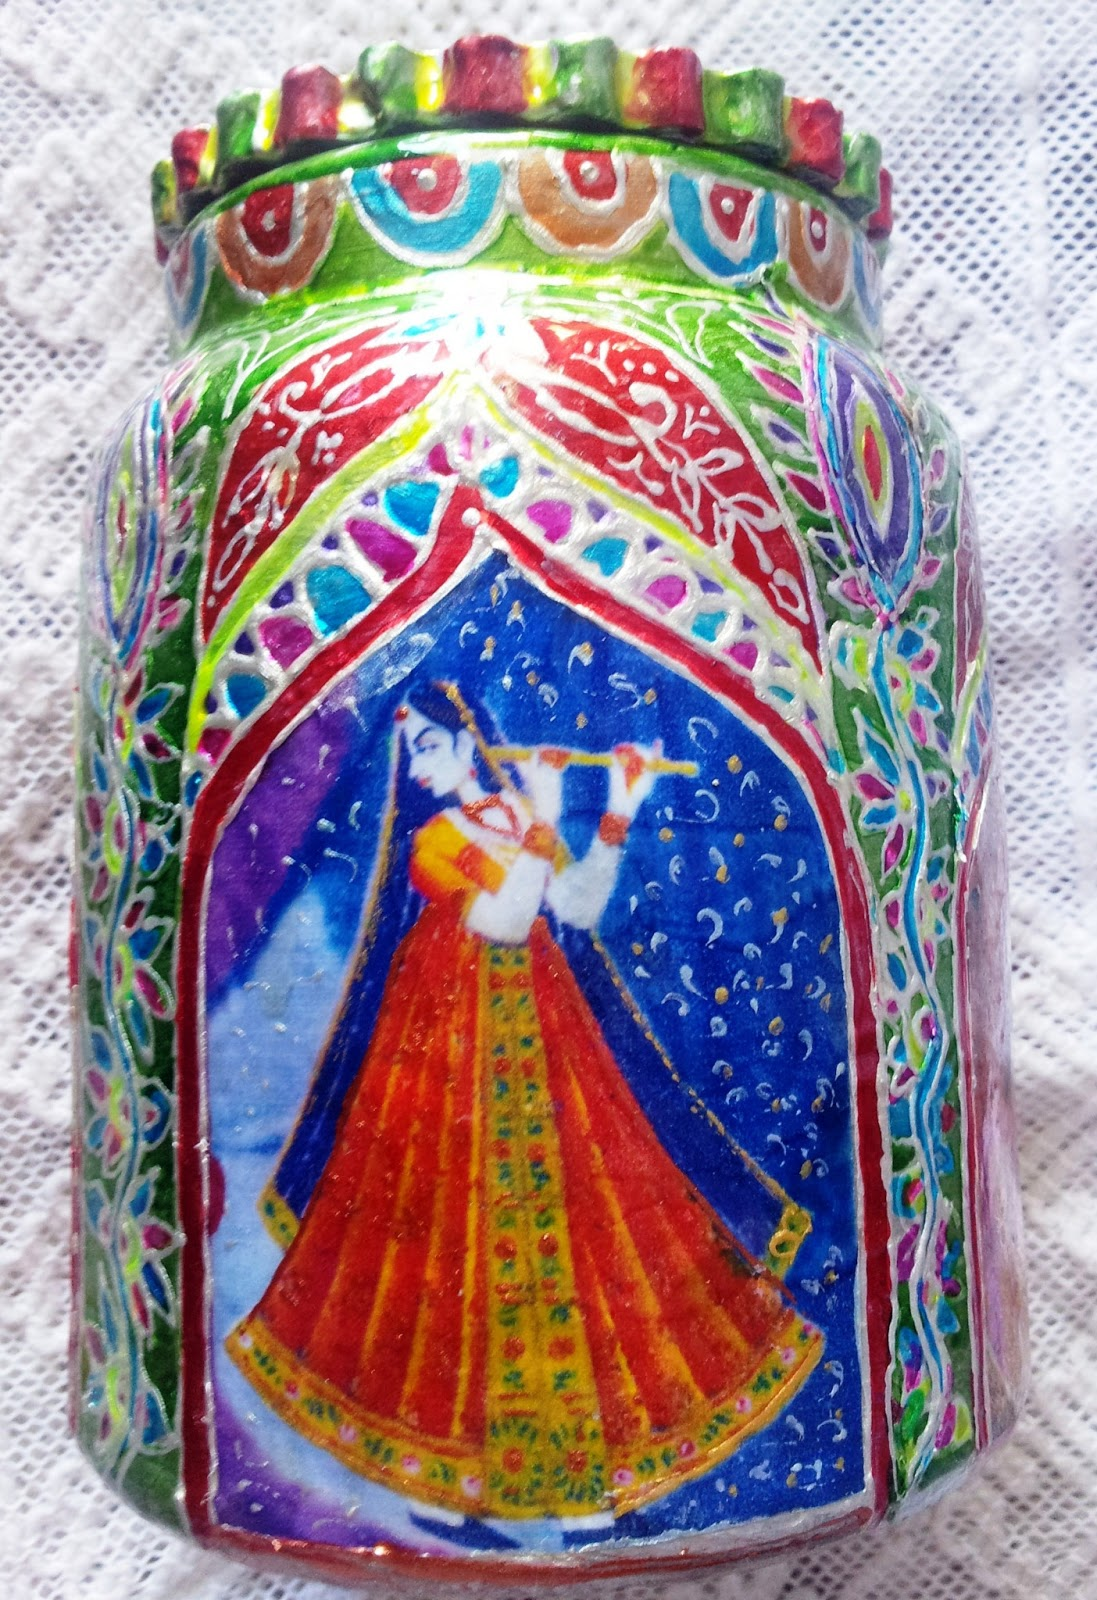 My creations decoupage n glass painting on pickle jar for Using fabric paint on glass